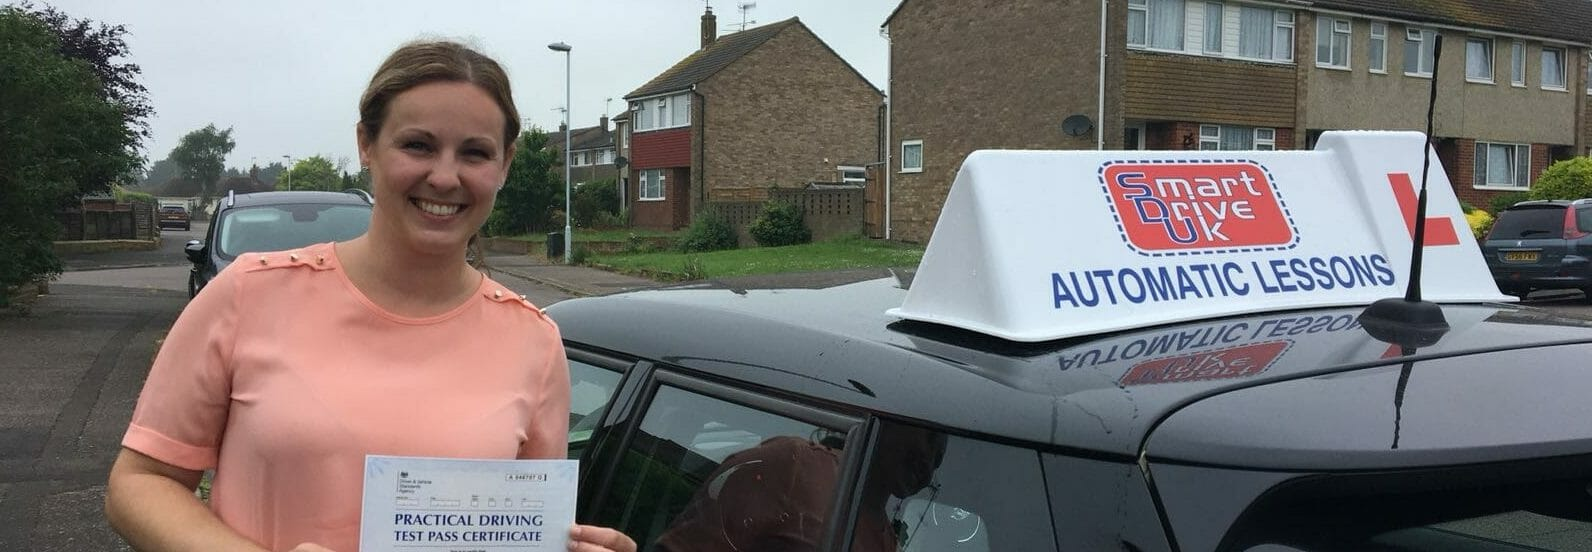 Congratulations to Lenka from Worthing